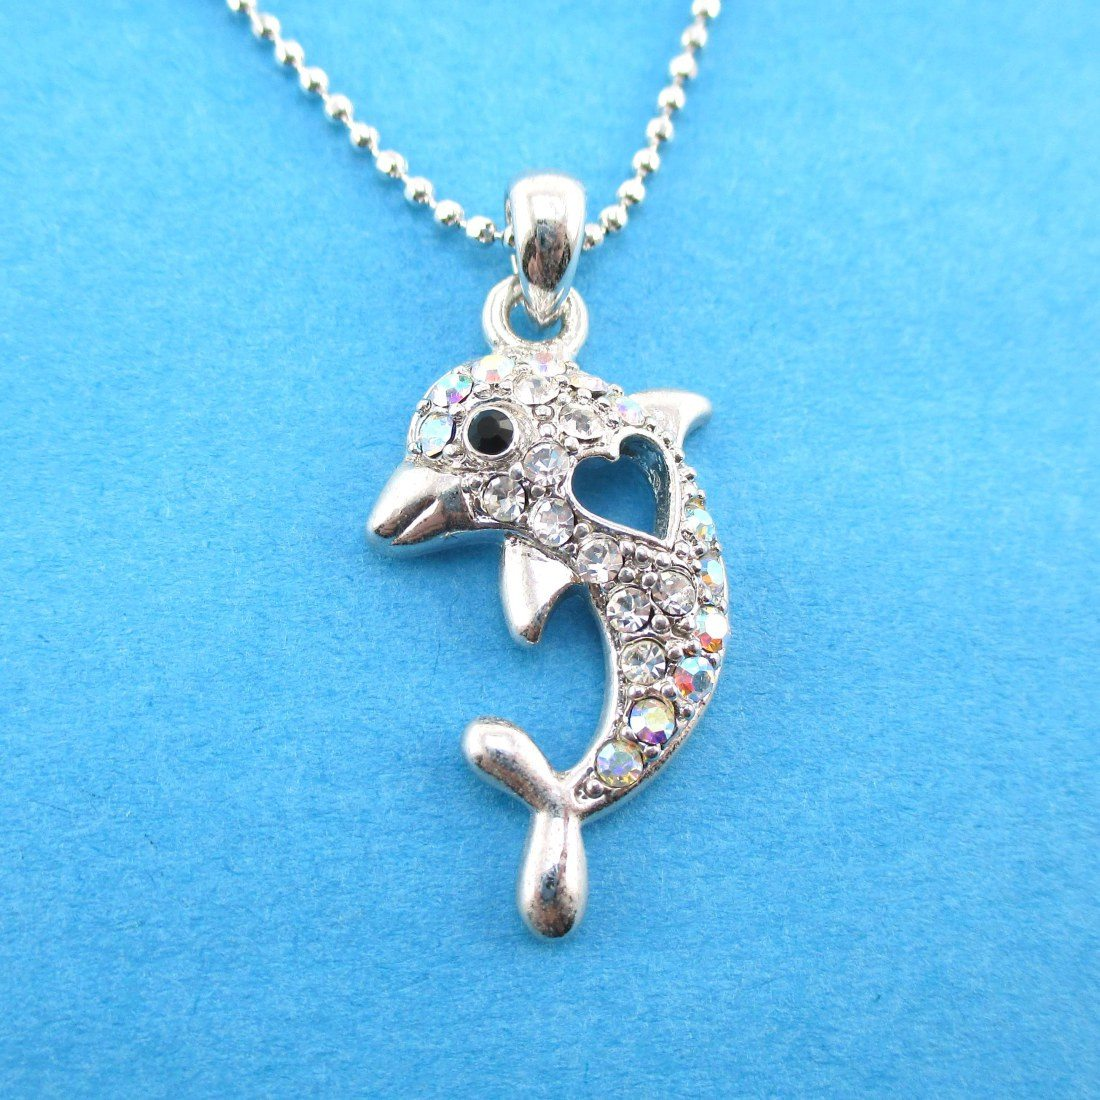 Dolphin and Heart Shaped Rhinestone Pendant Necklace